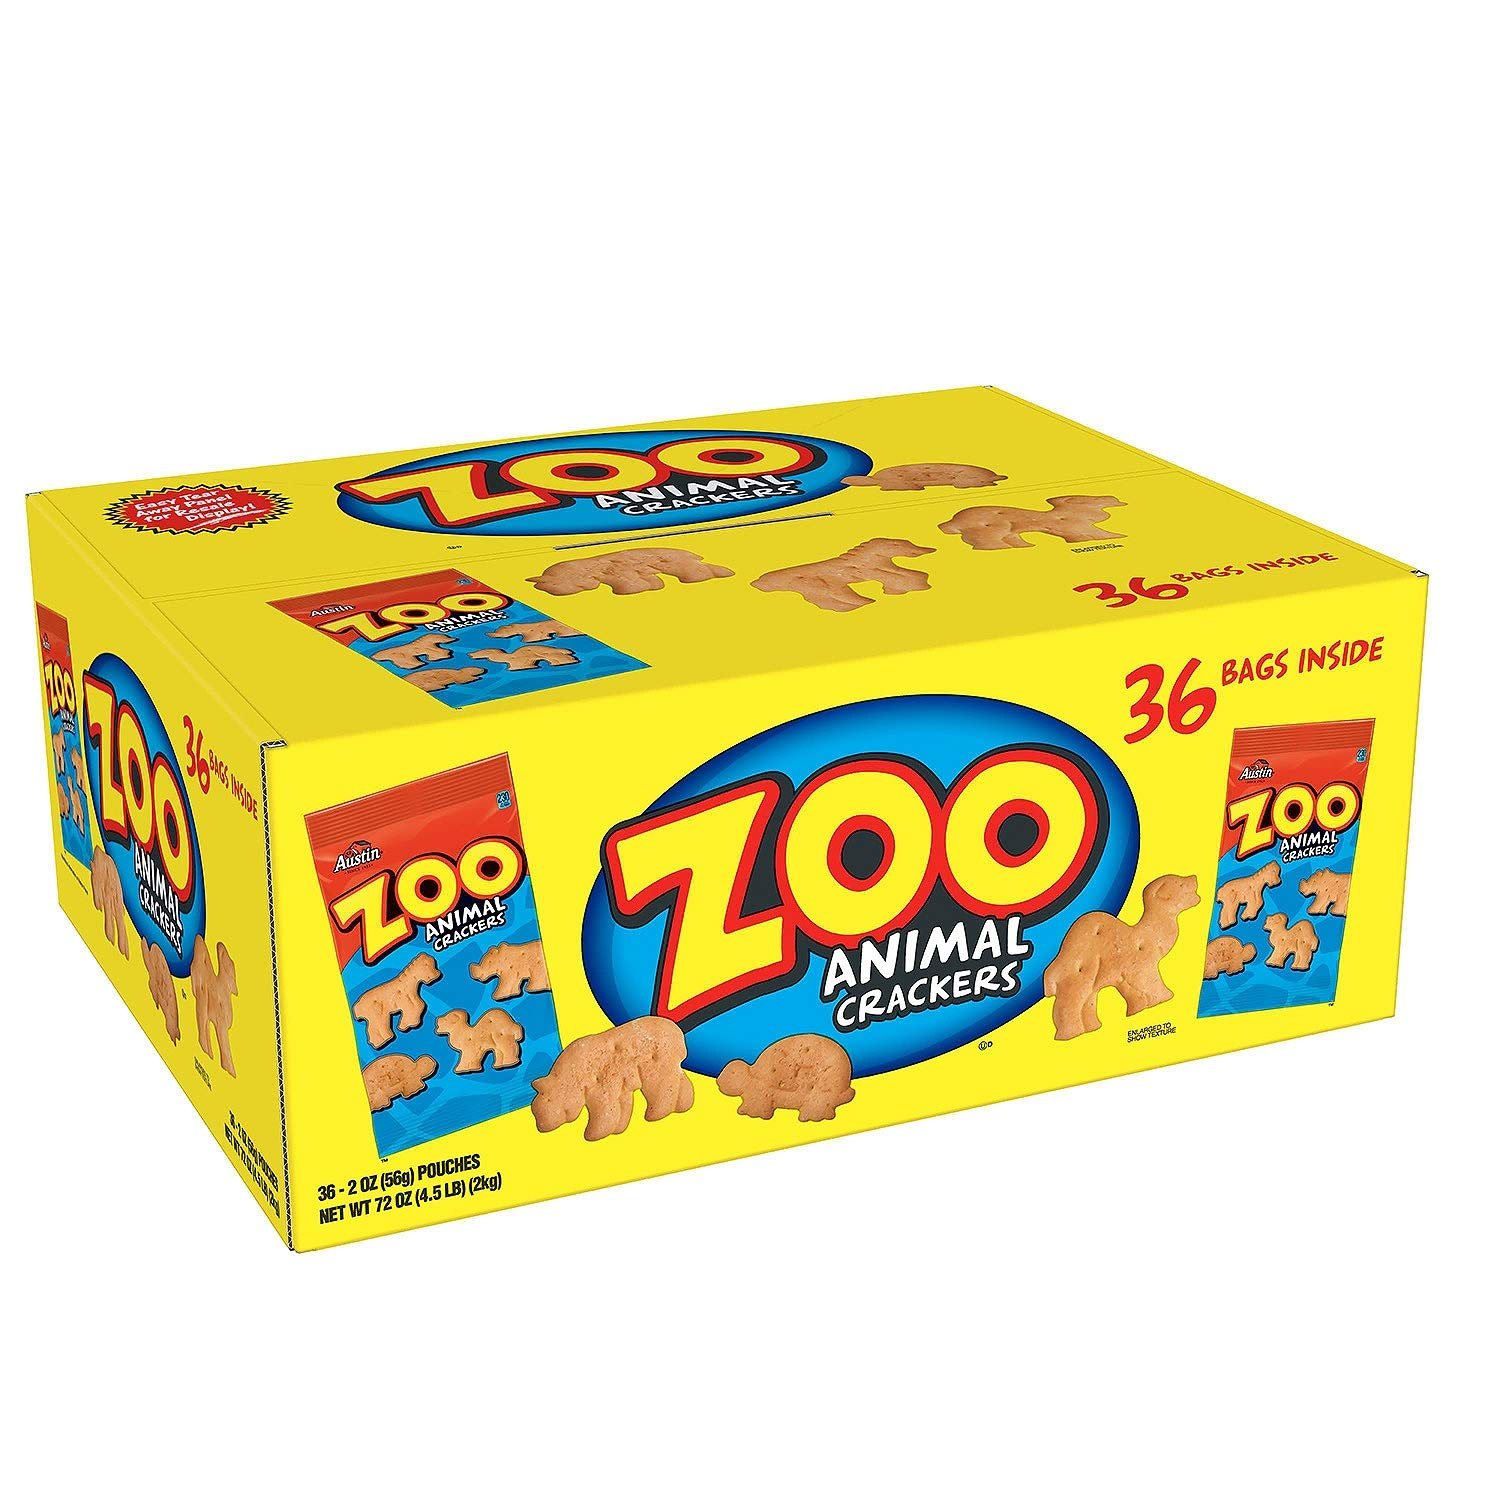 Austin Zoo Animal Crackers 2 oz, 36 ct. (pack of 3) A1